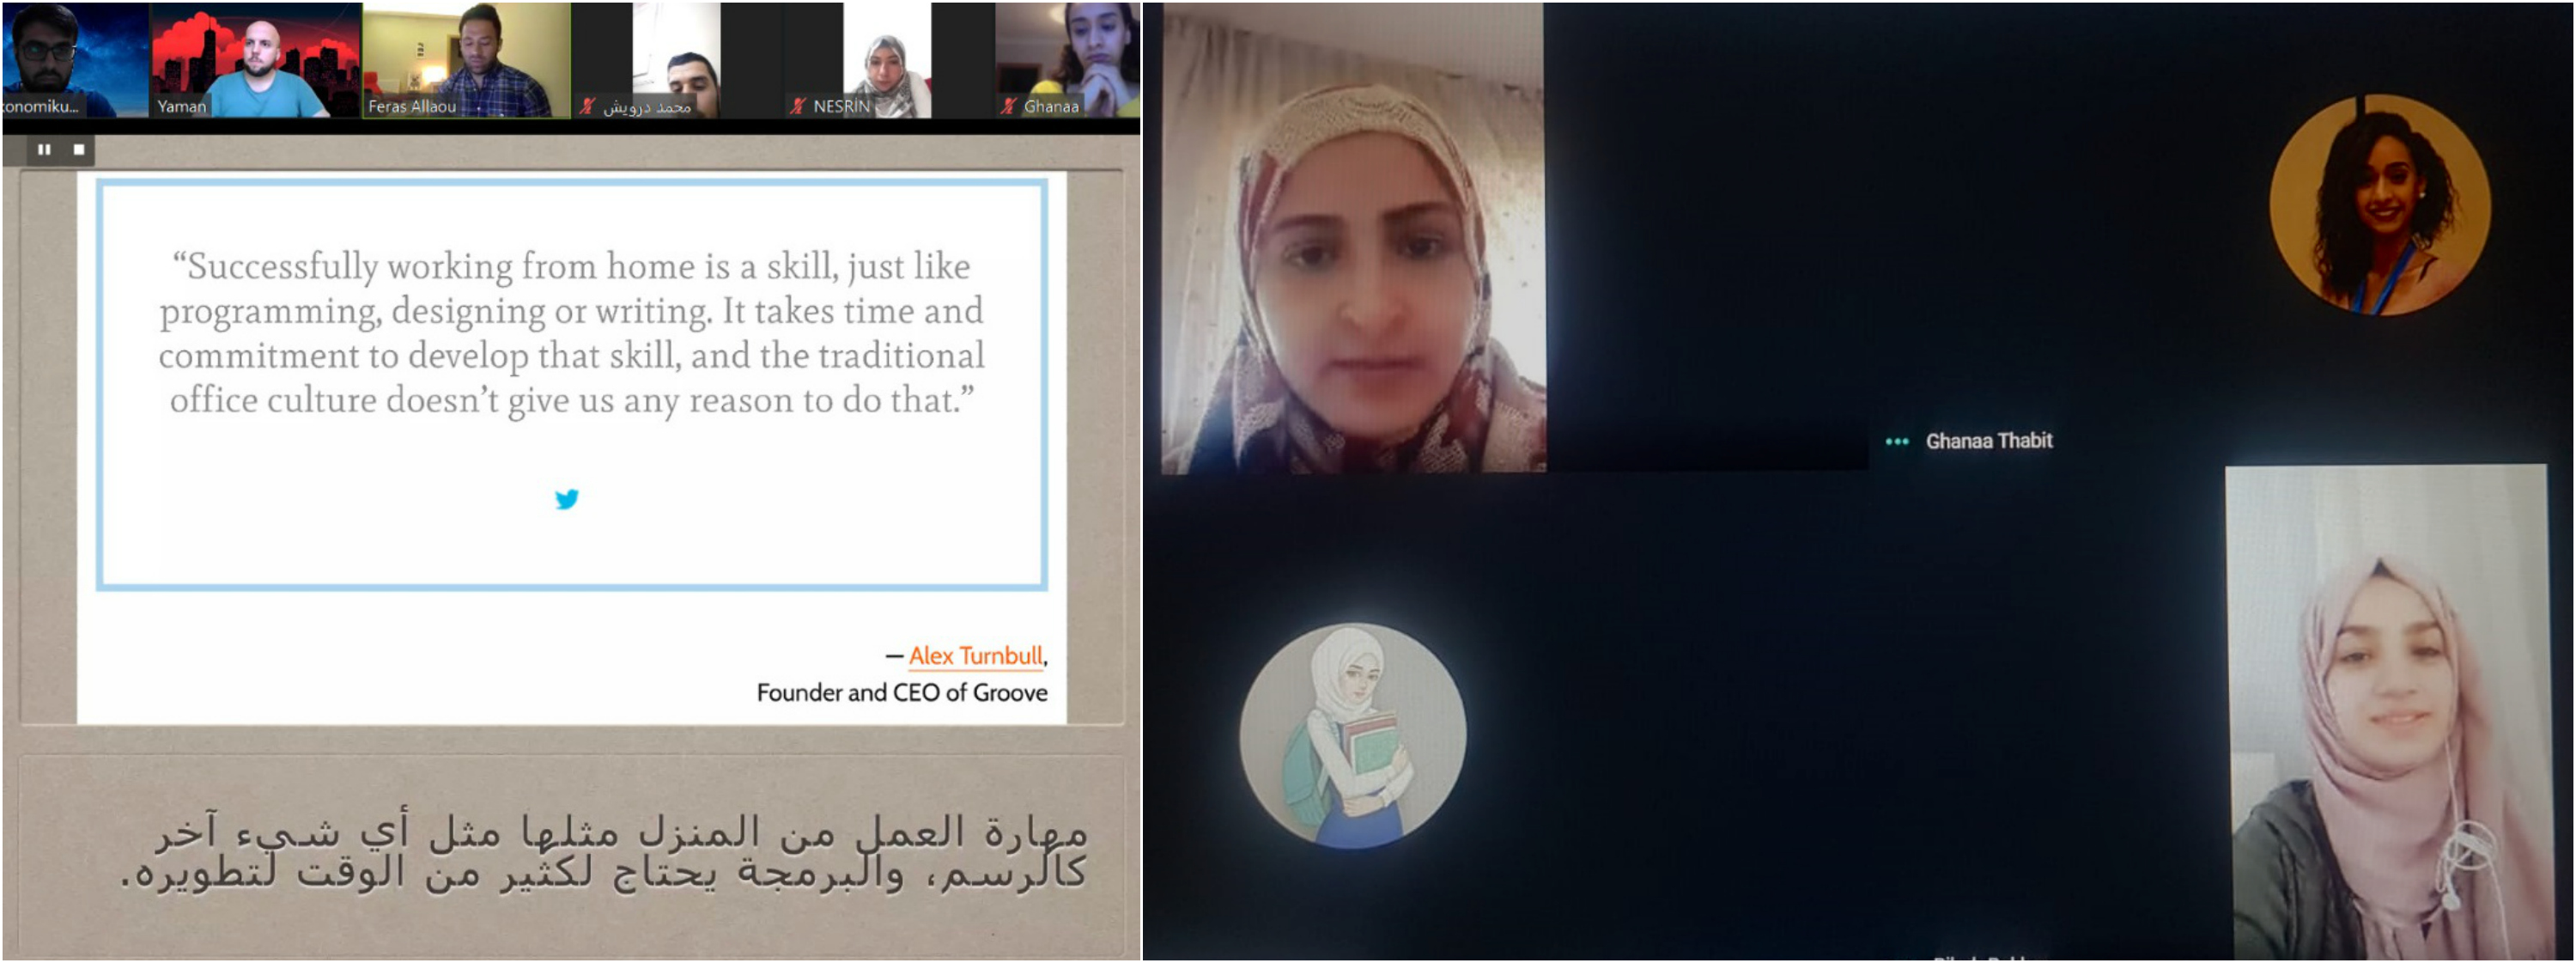 To combat COVID-19, UN Women is digitally empowering Turkish and Syrian women